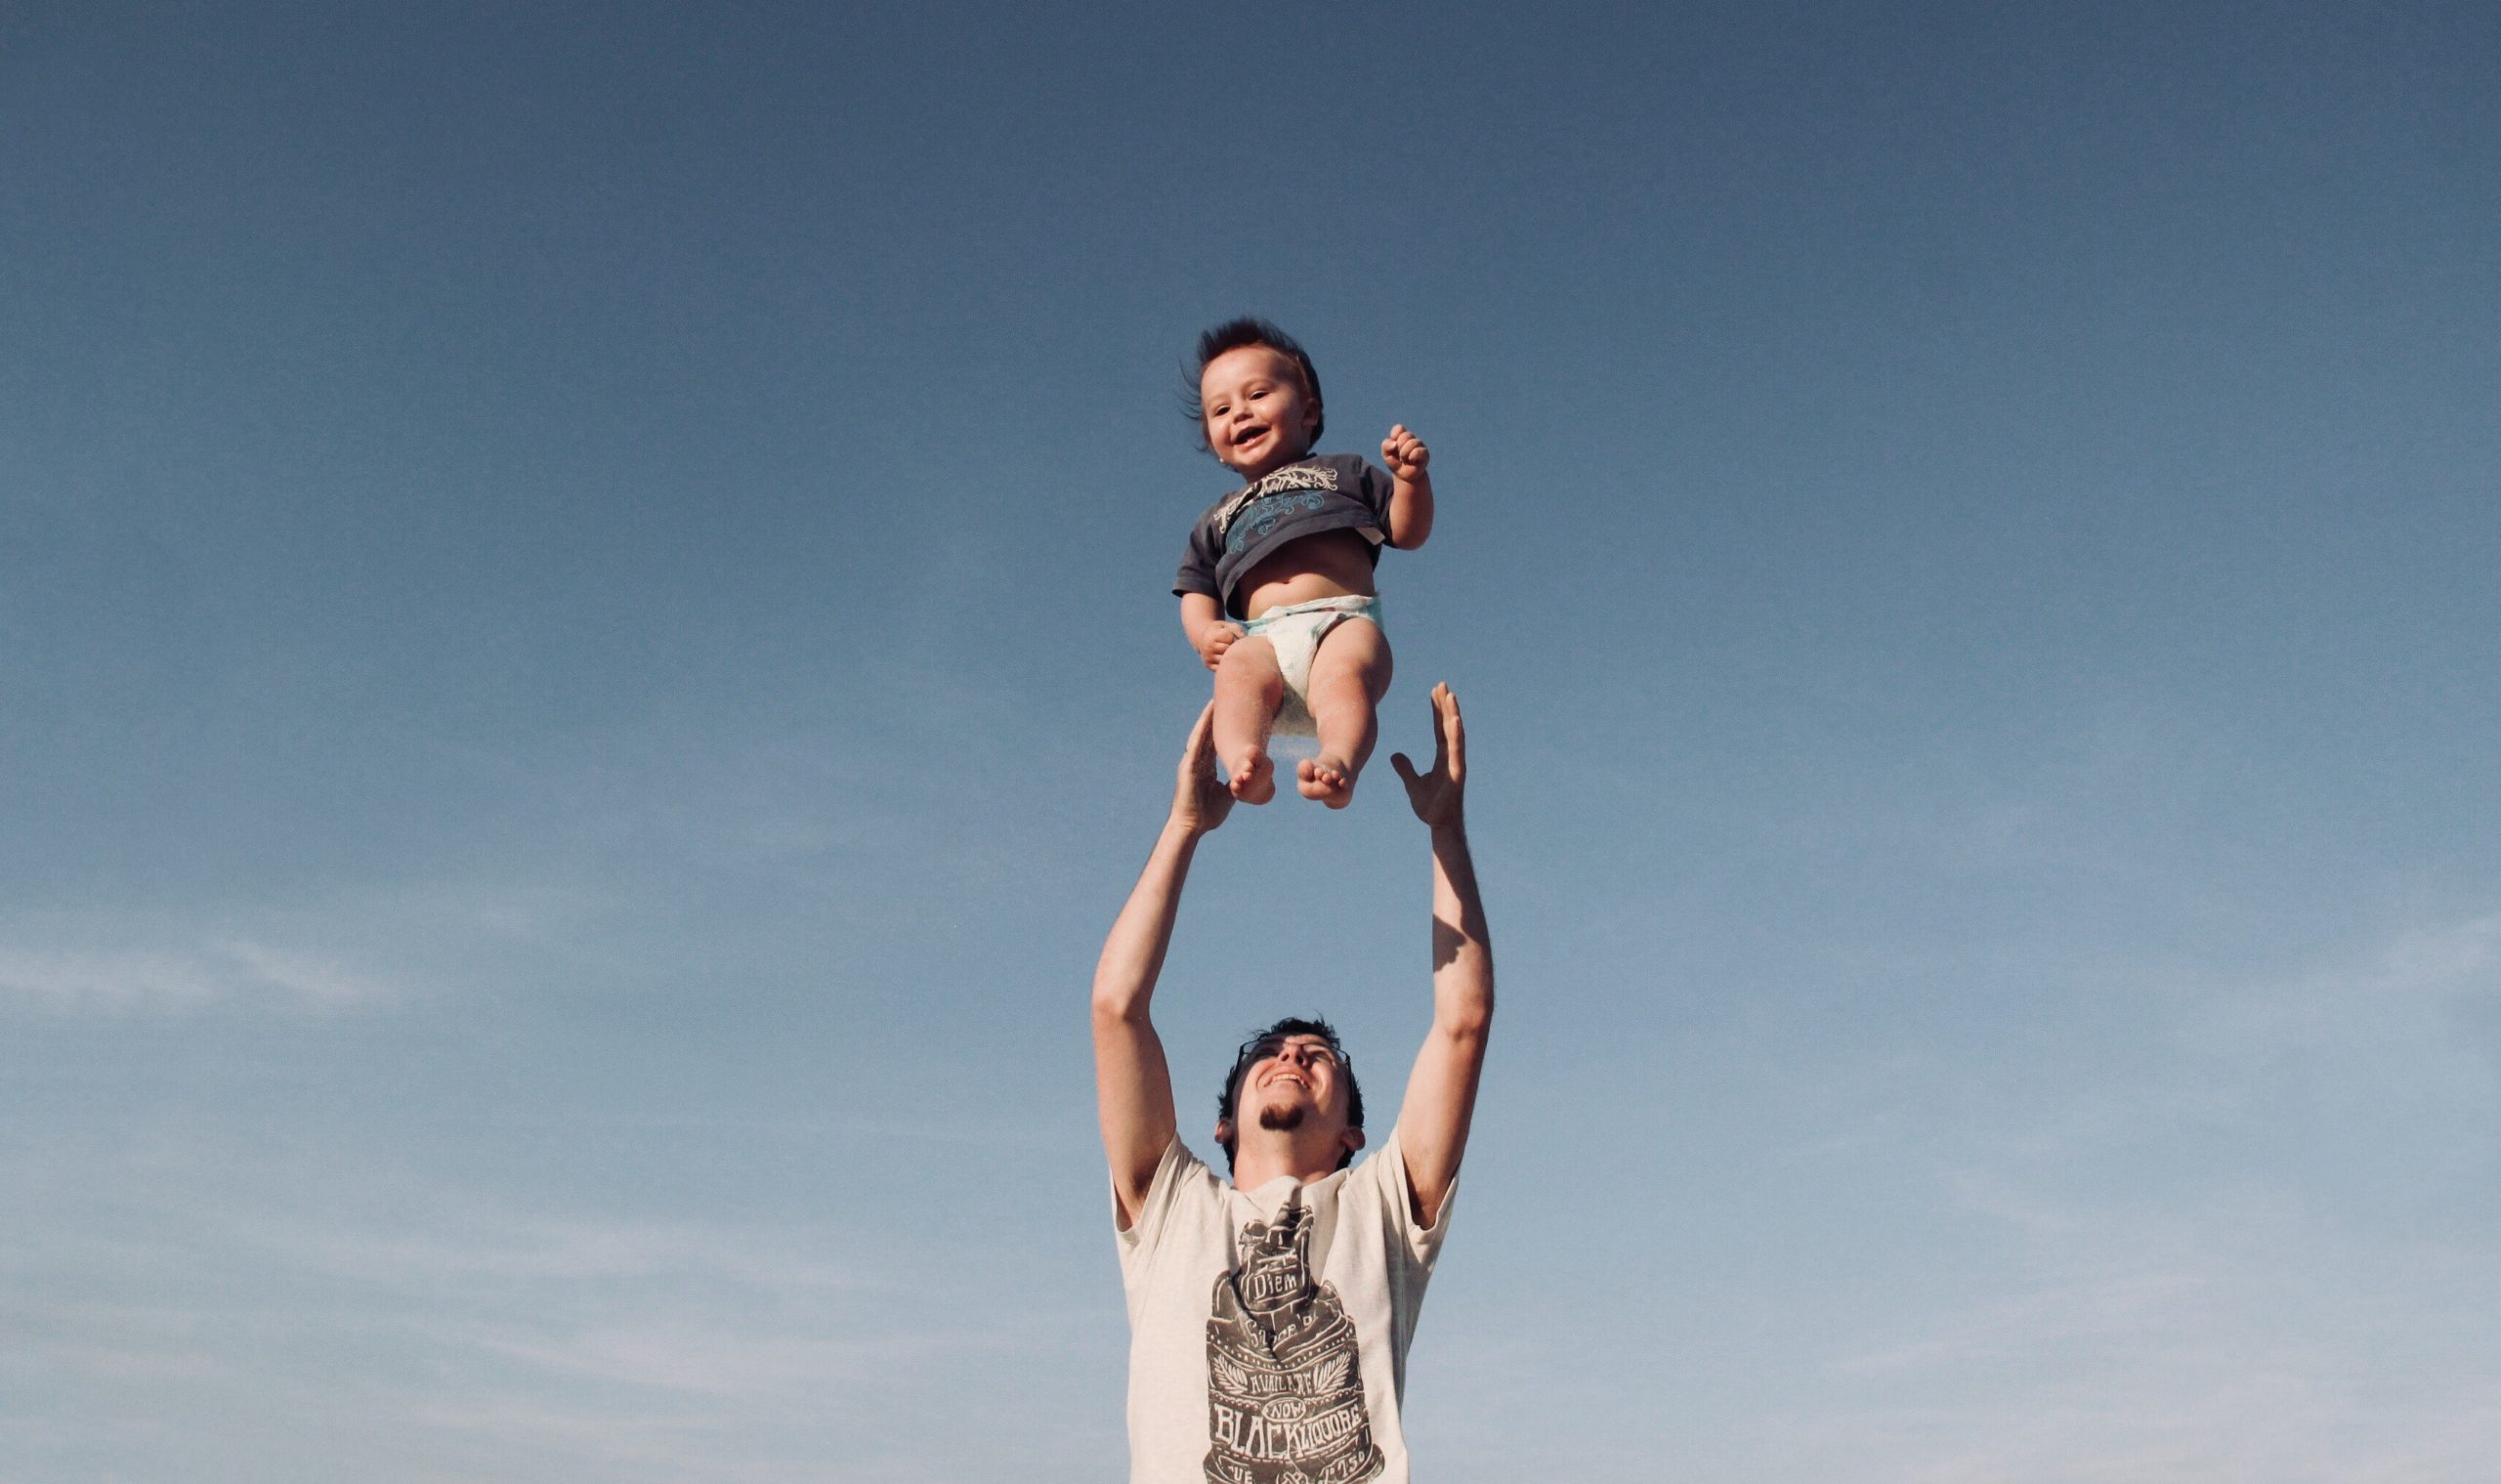 photo-of-man-in-raising-baby-under-blue-sky-1166990-scaled